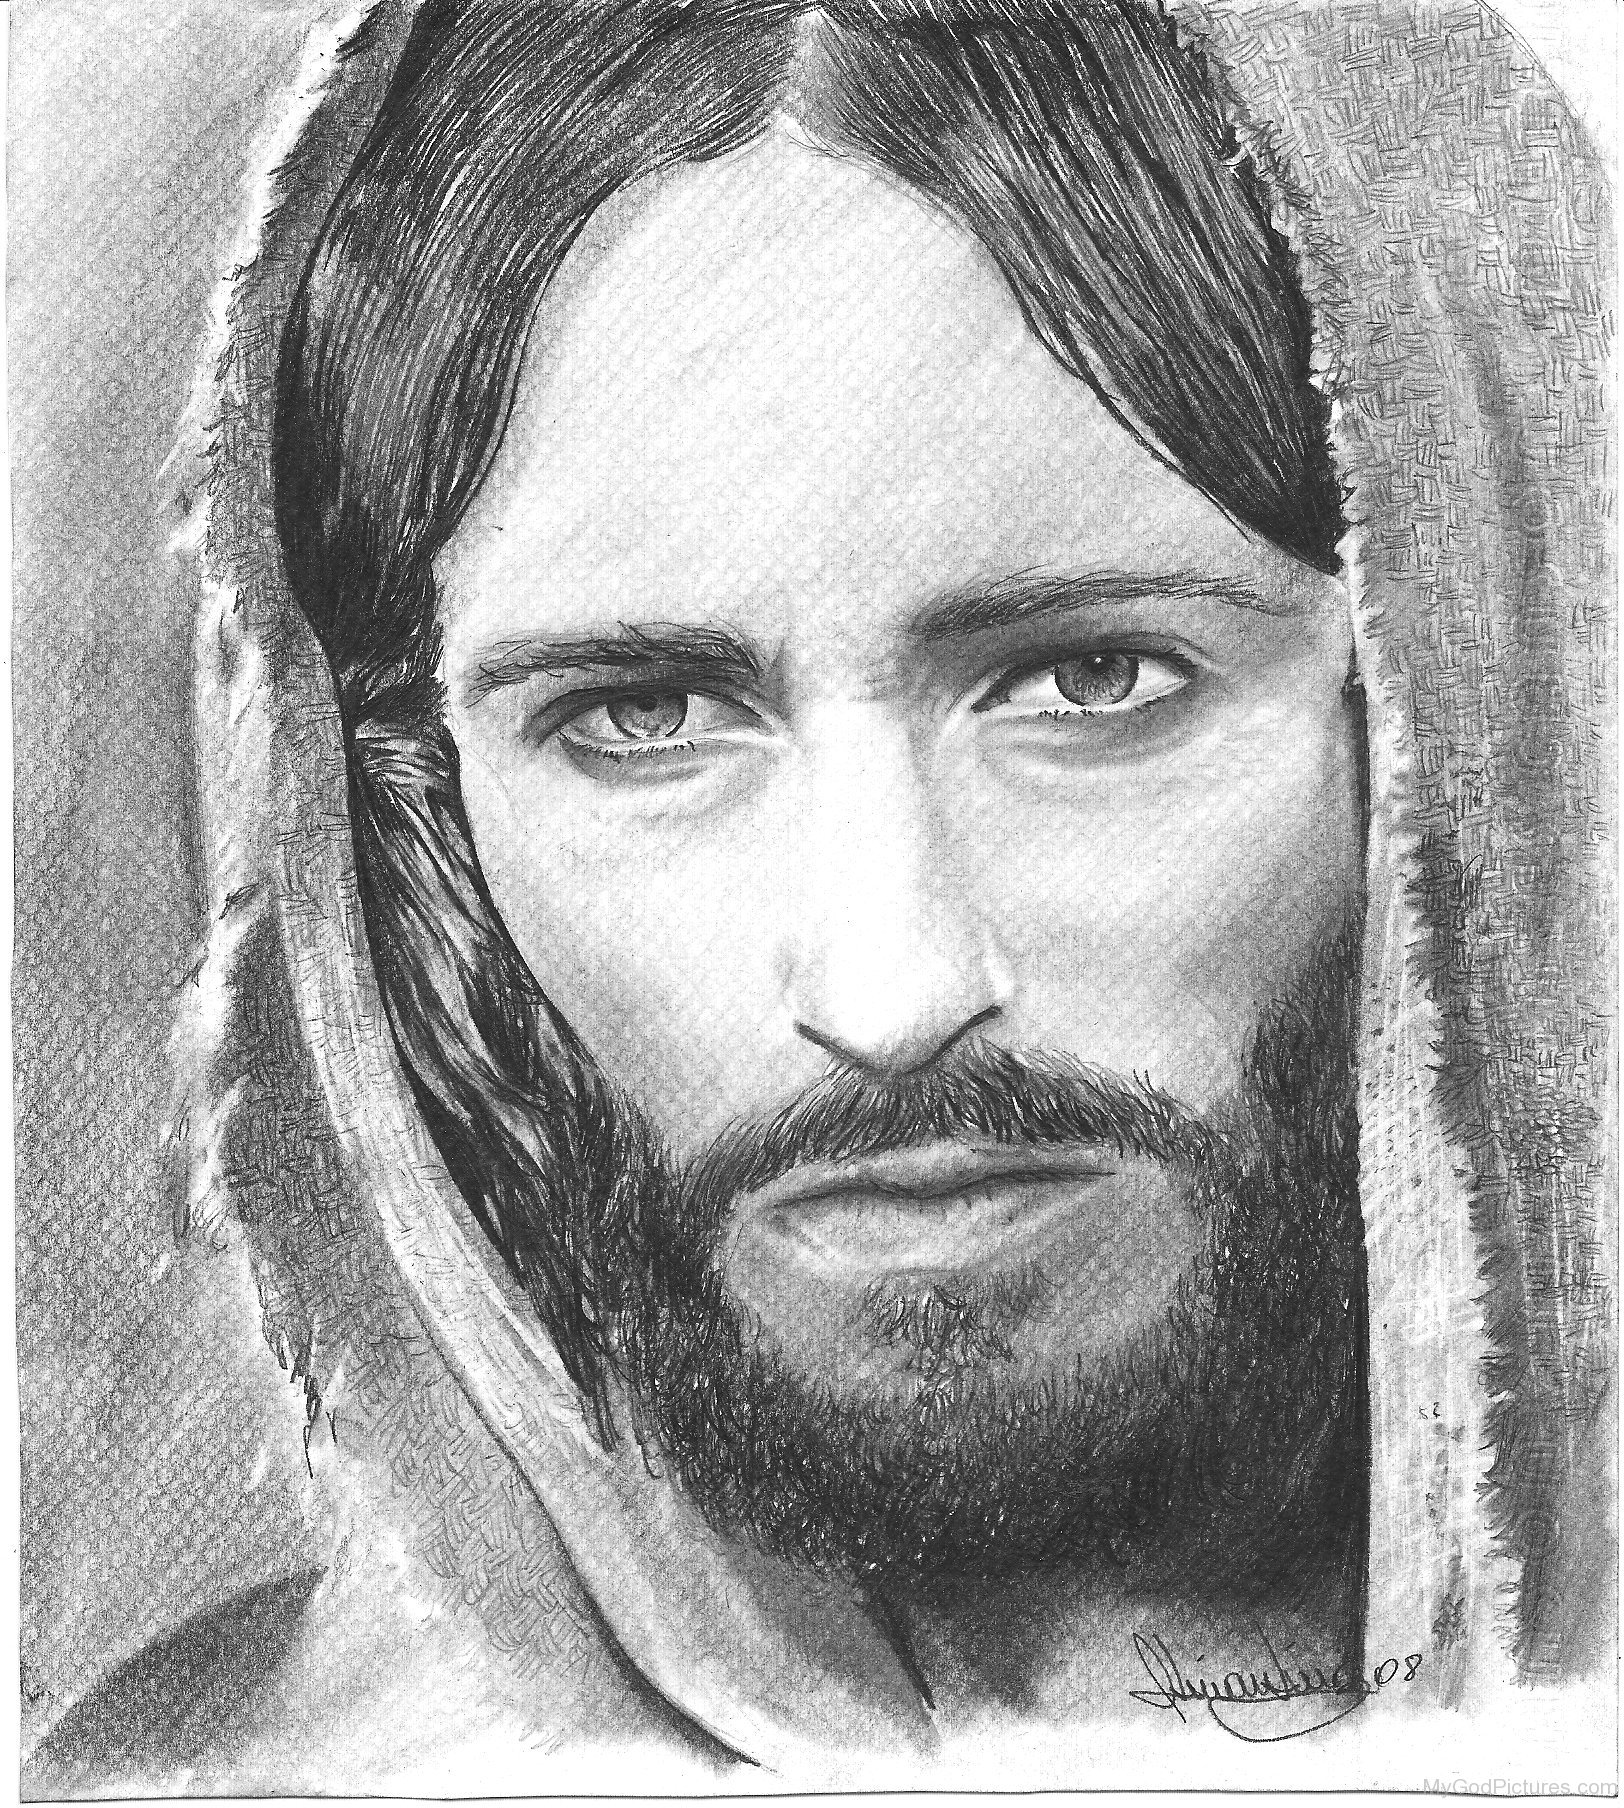 Pencil Drawings: Pencil Drawings Of Jesus Christ